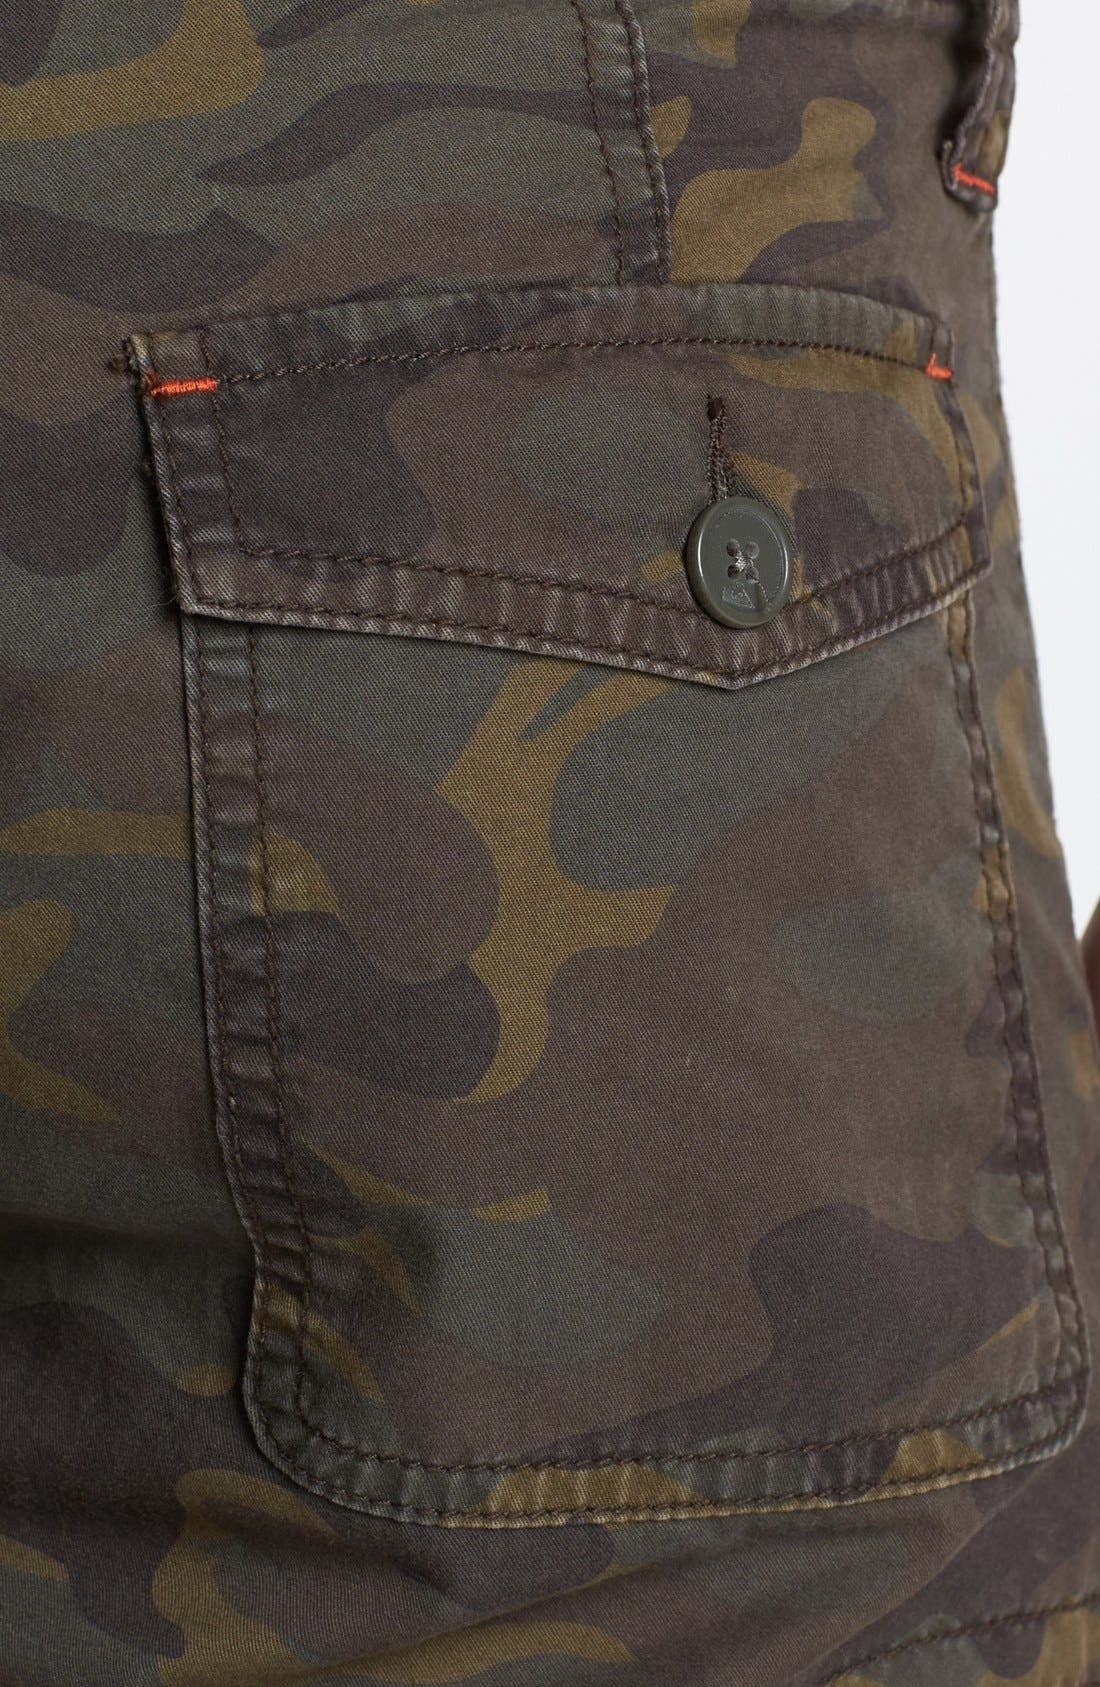 Alternate Image 3  - Quiksilver 'Dust Buster' Camo Print Cargo Shorts